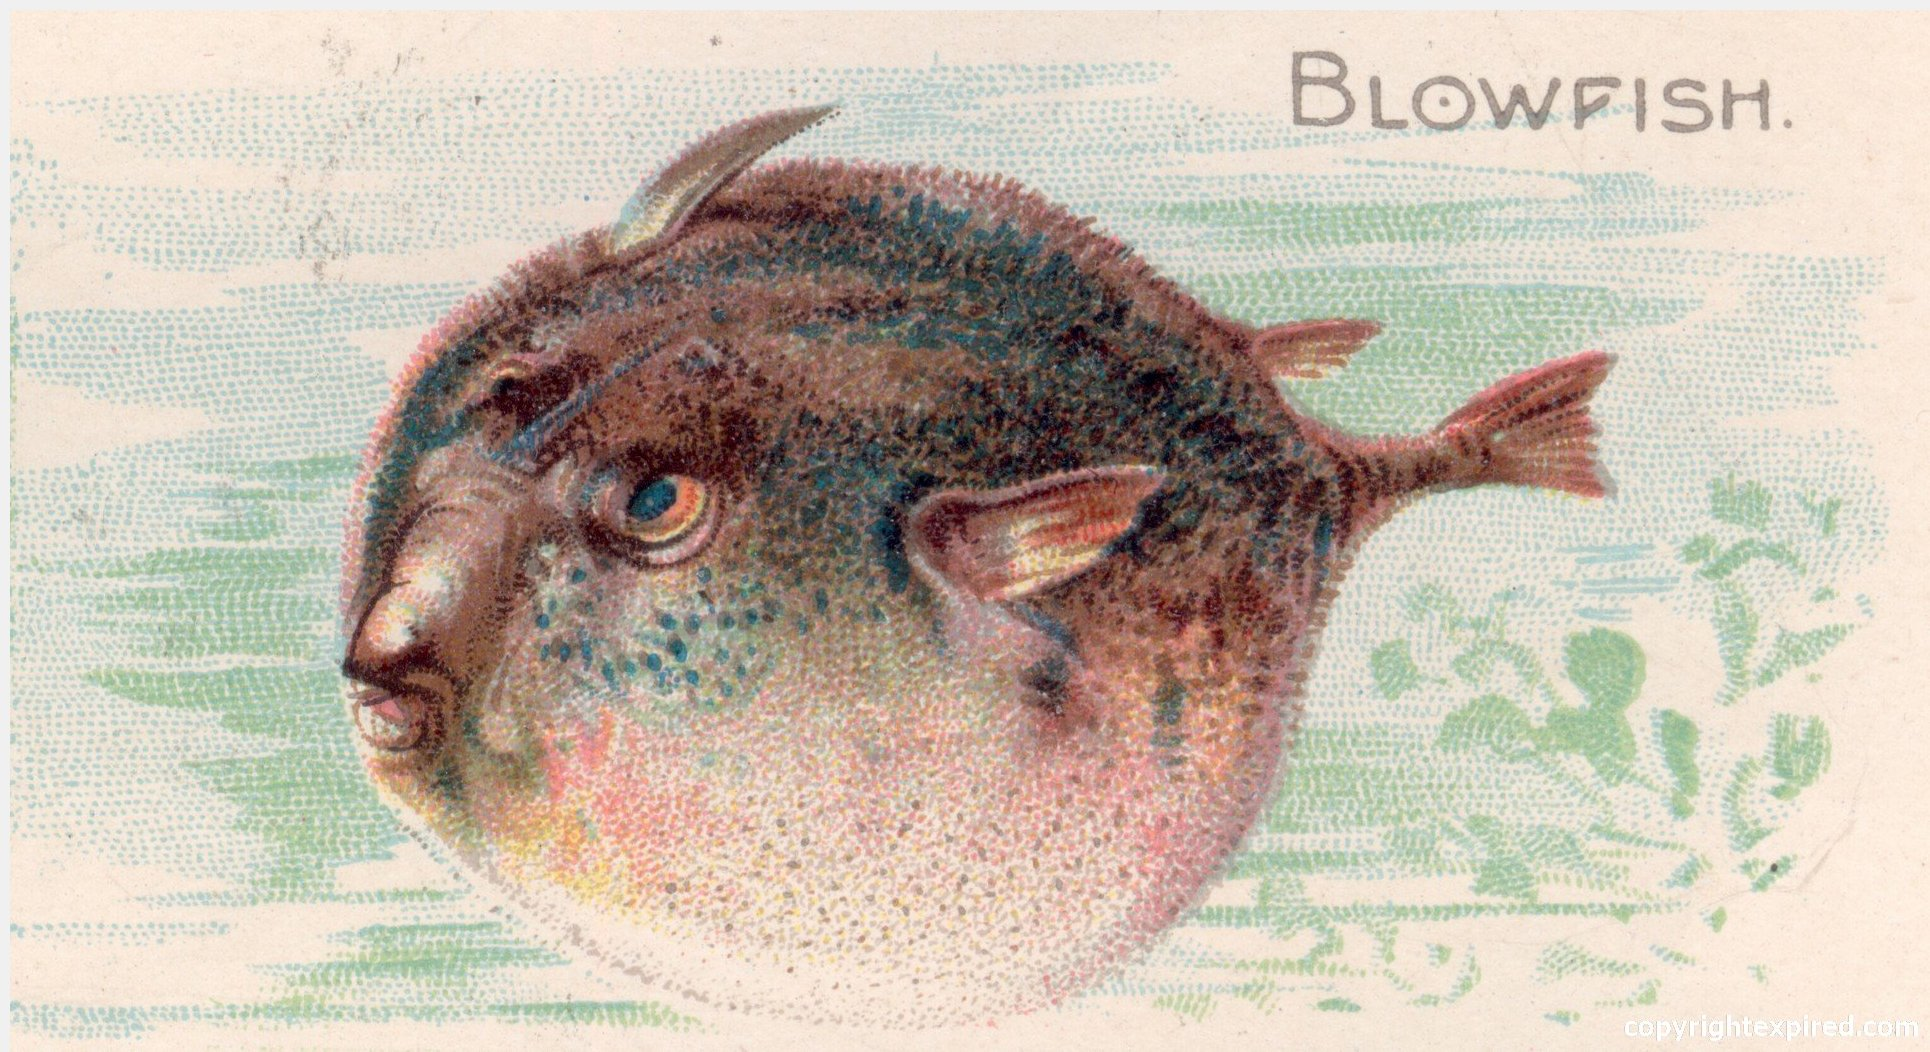 ... Fish Illustrations for Crafts, School, Brochures, Clip Art - Blowfish